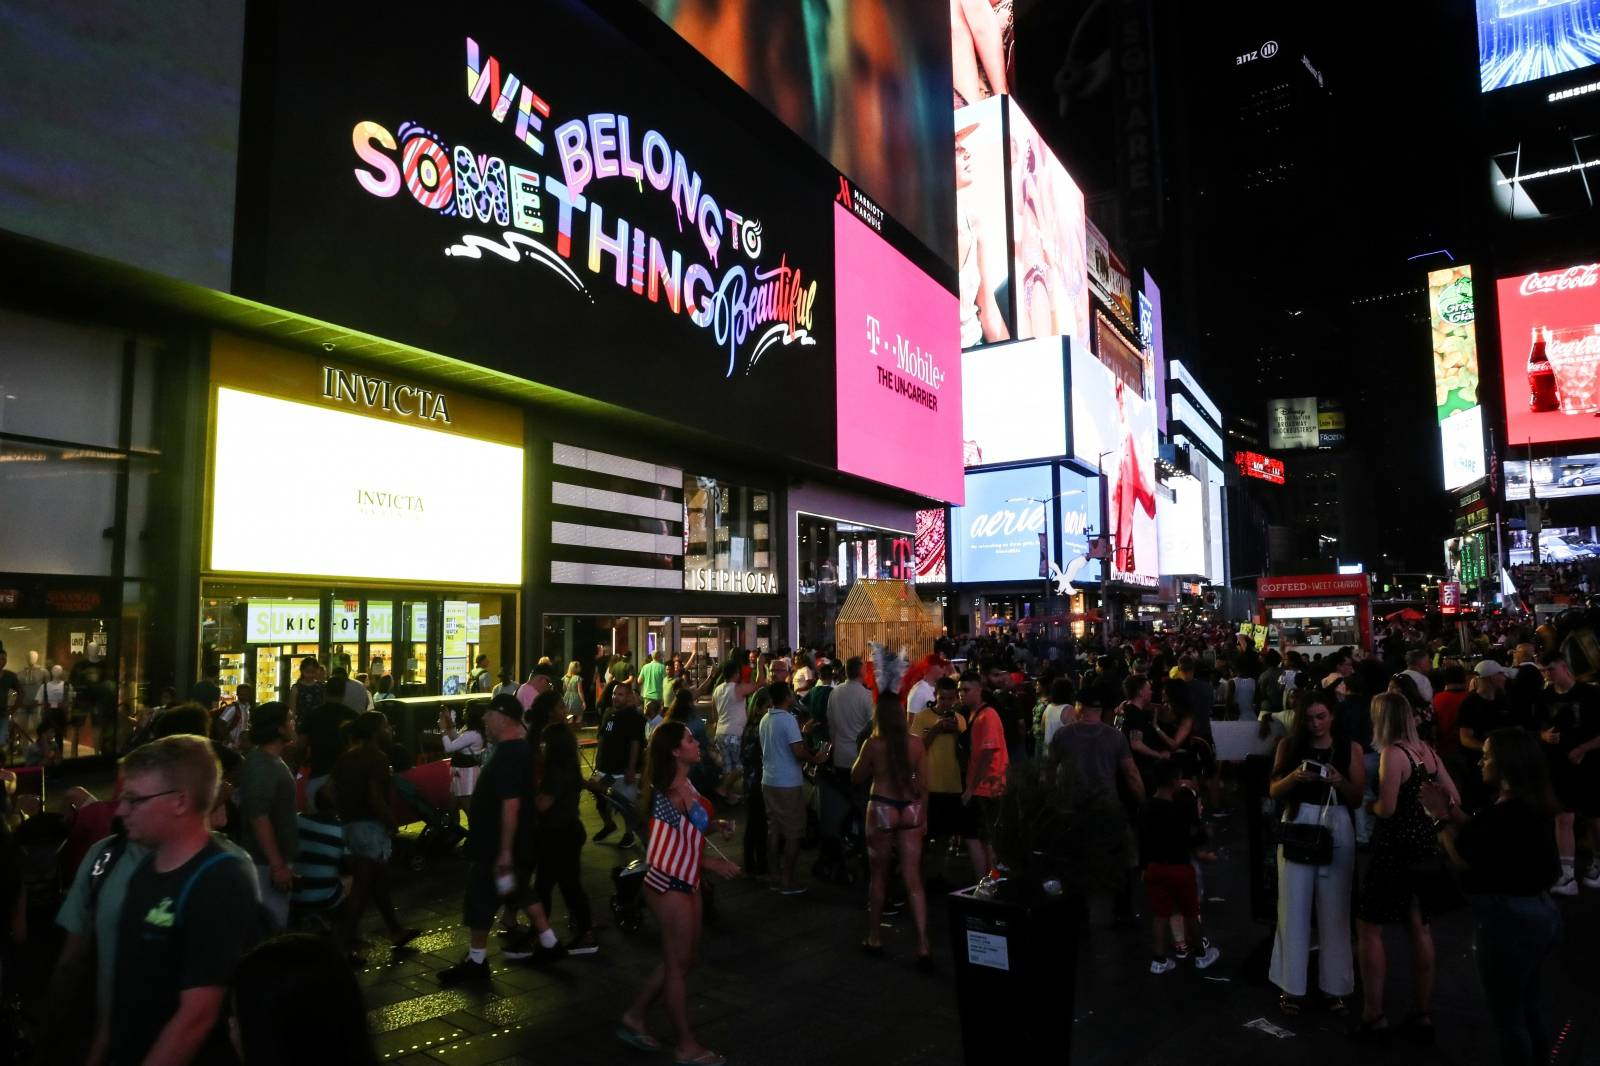 People walk near Times Square area after power was restored following a blackout that affected buildings and traffic during widespread power outages in the Manhattan borough of New York